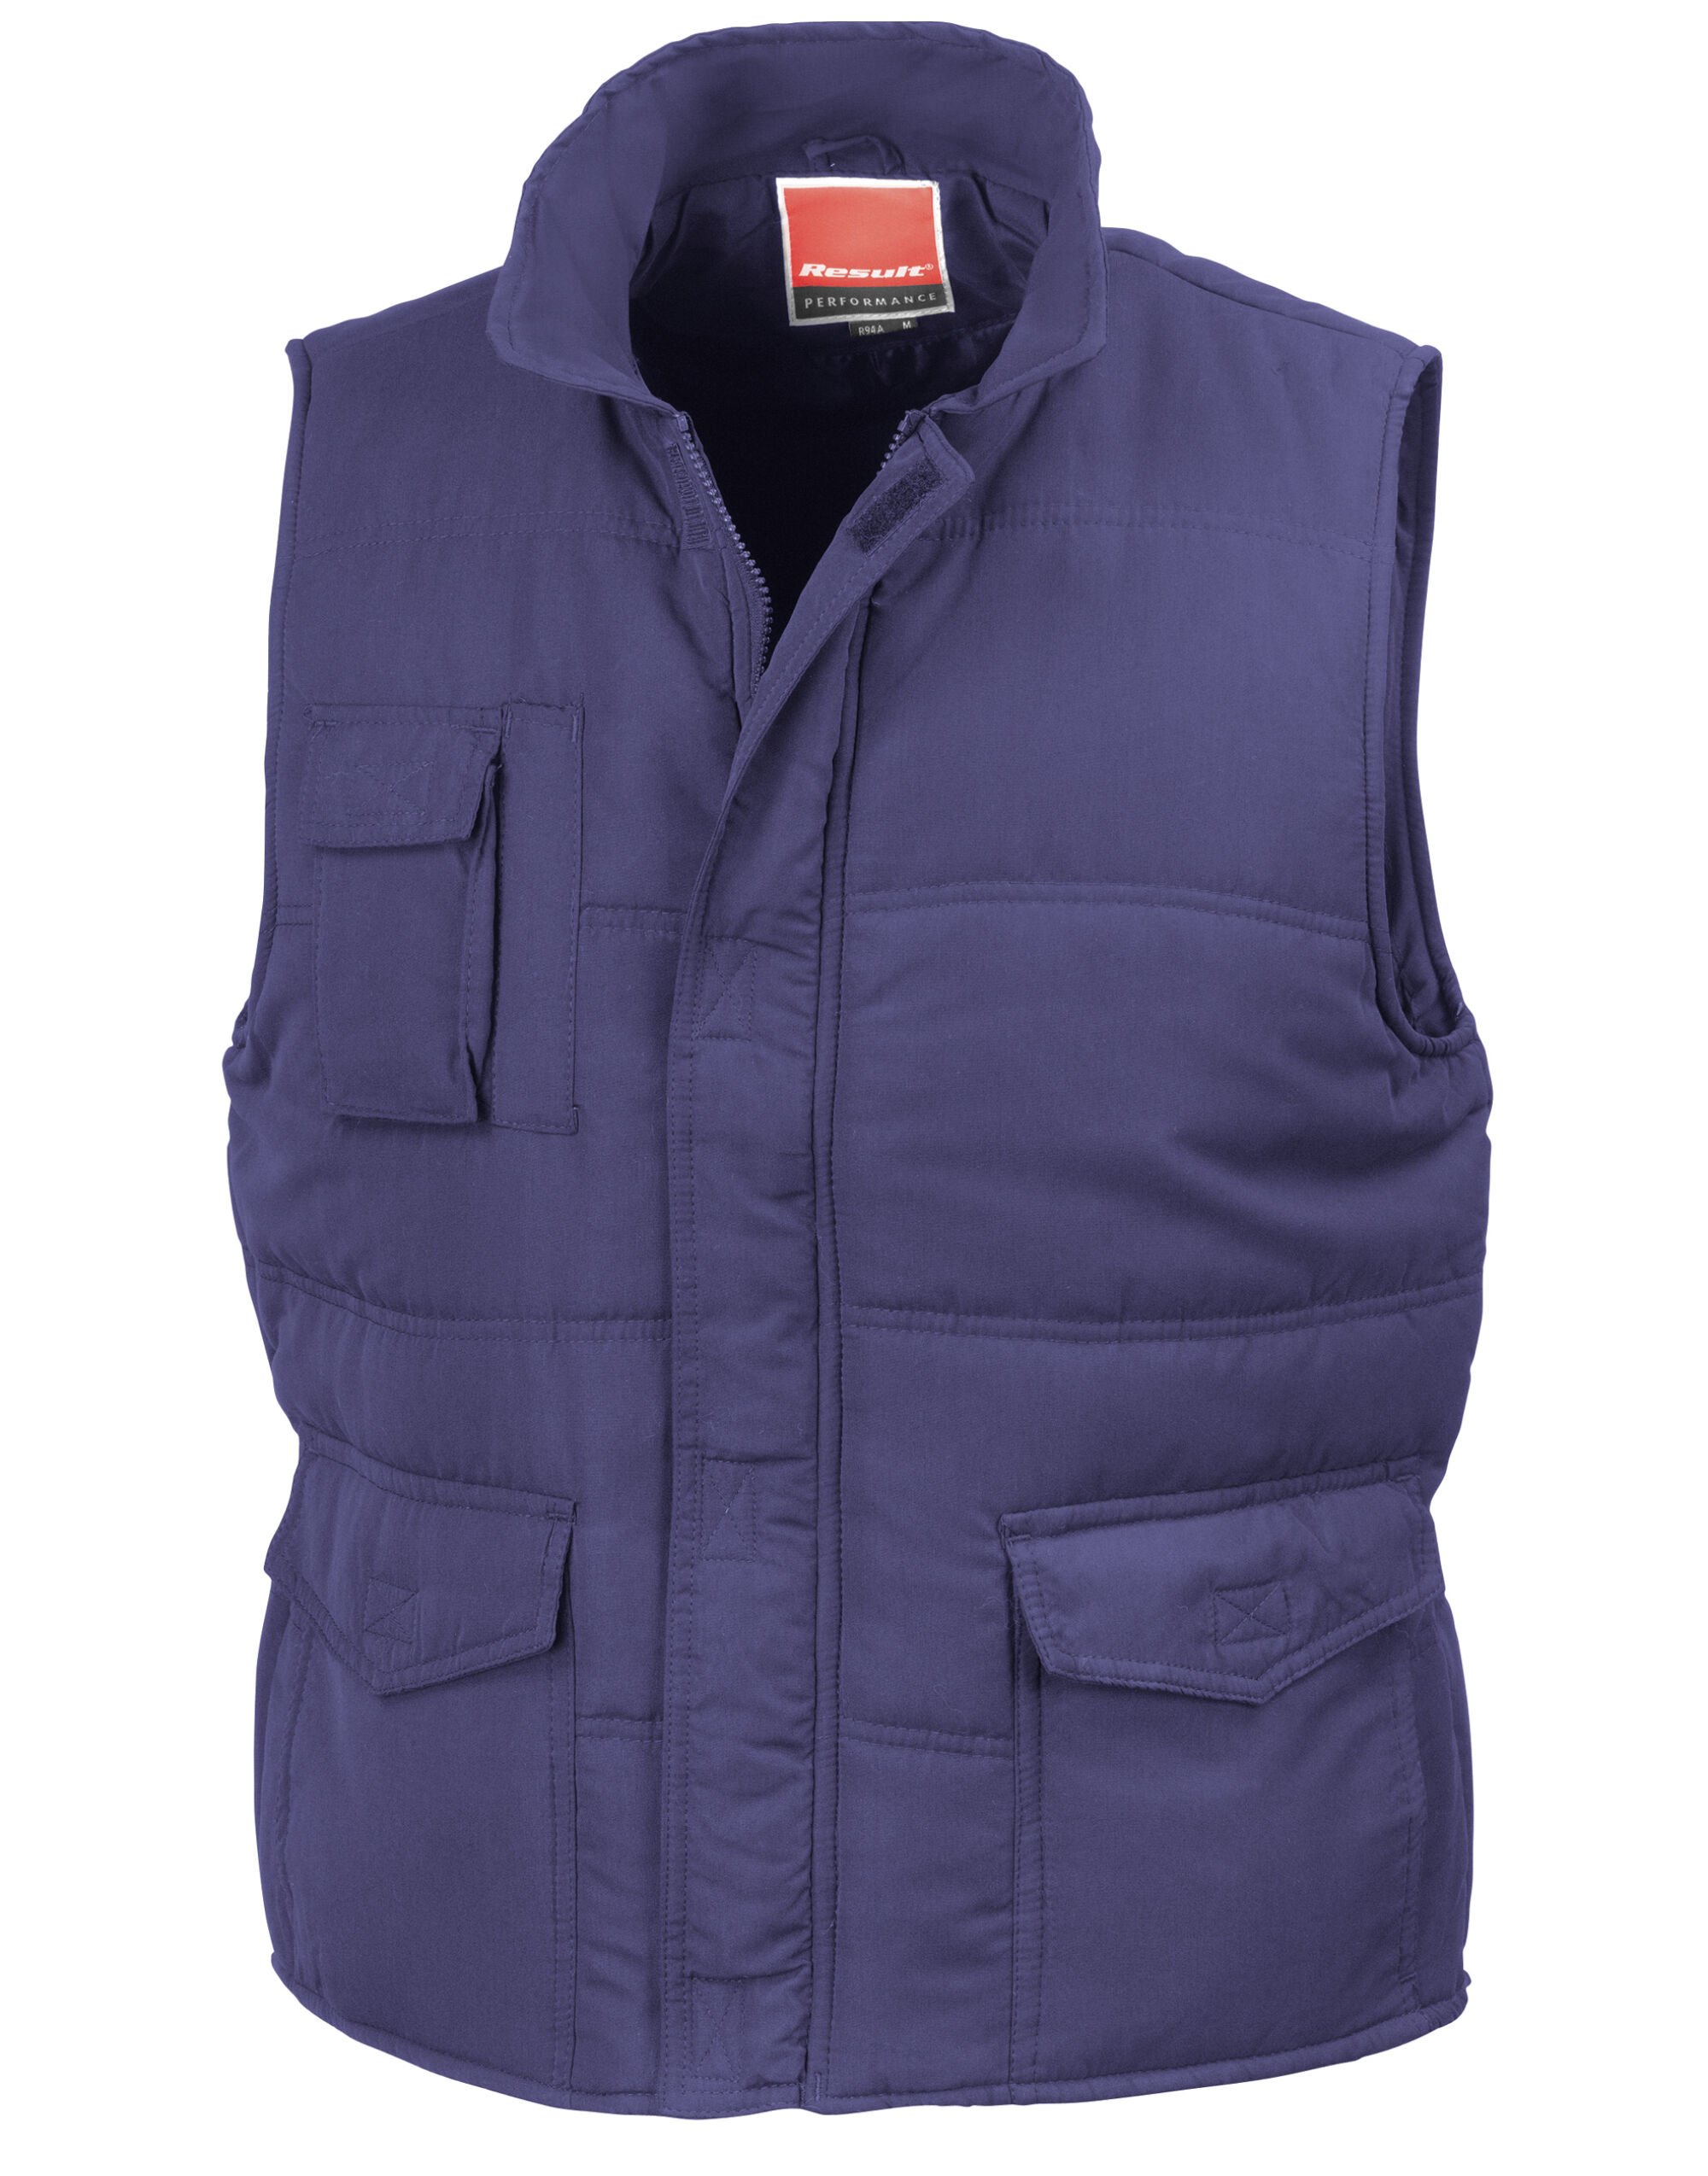 Promo Mid-Weight Bodywarmer